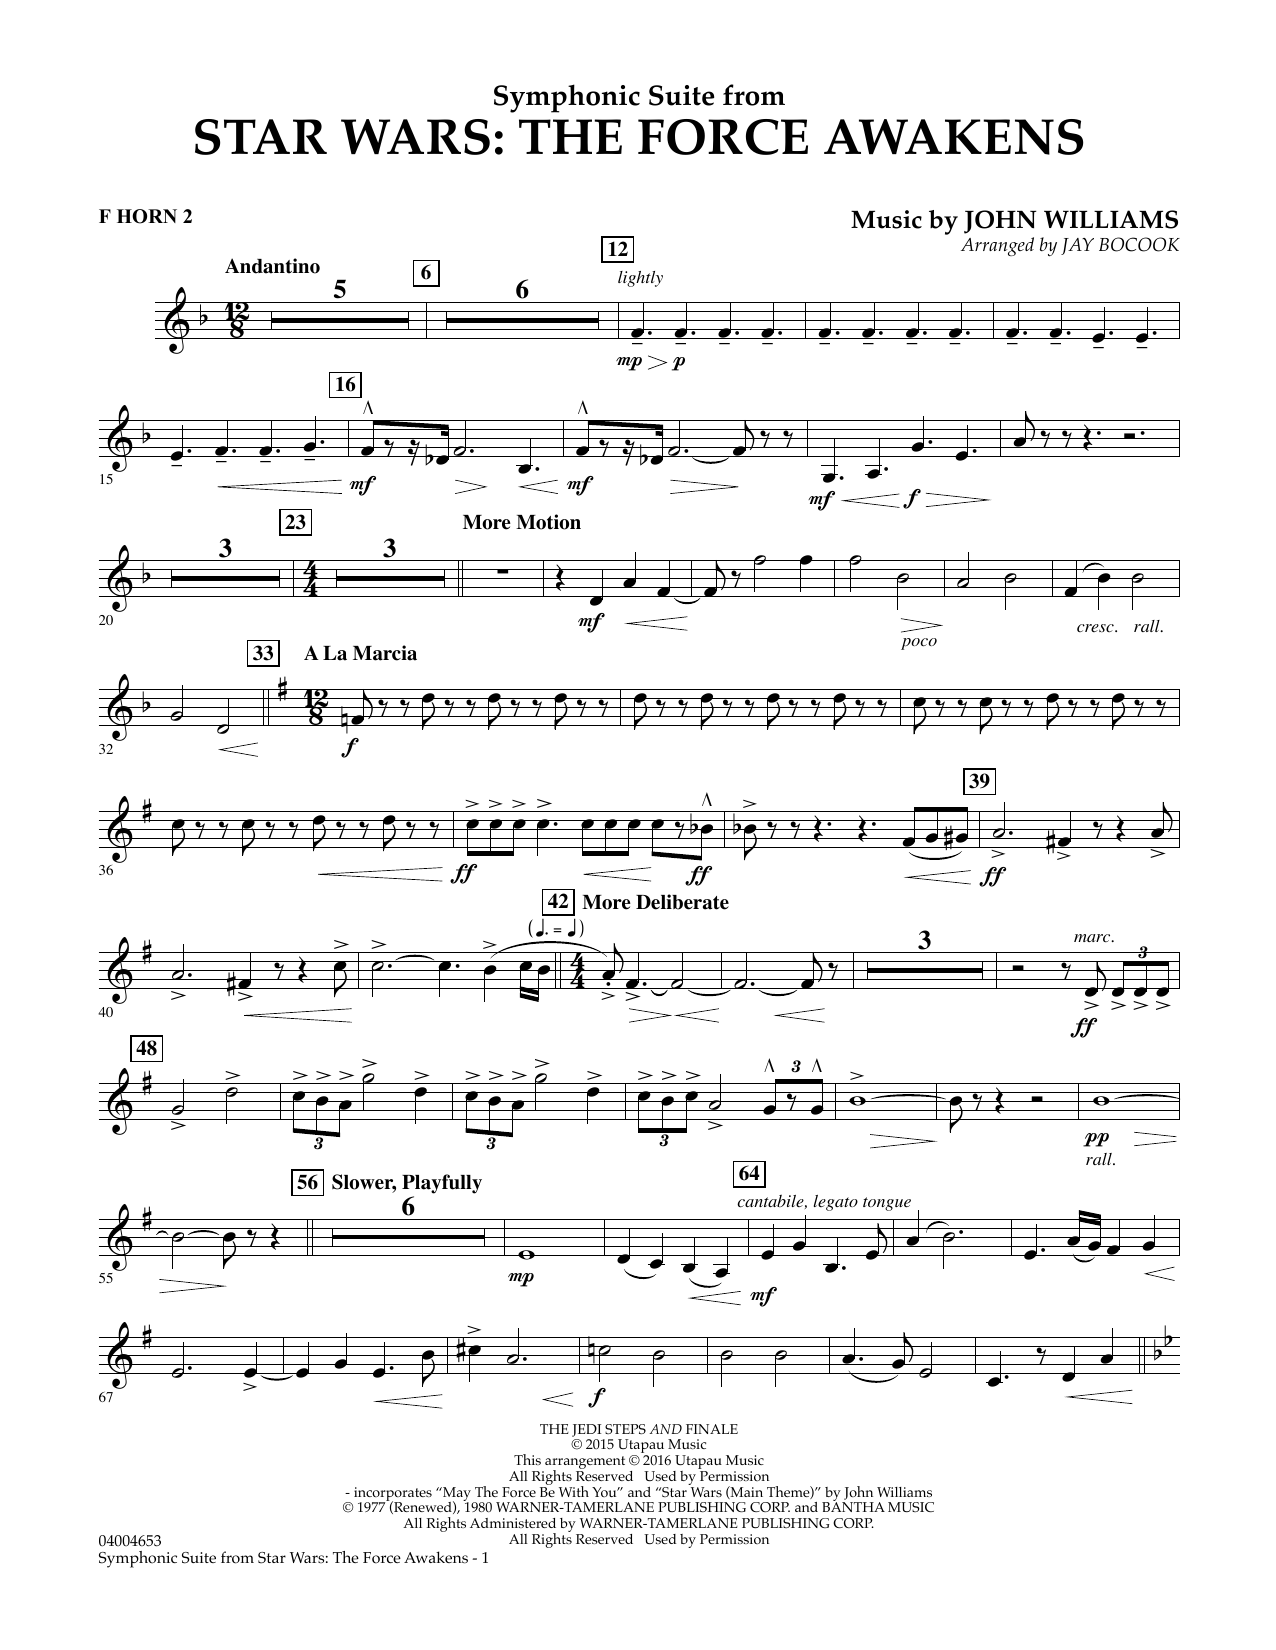 Symphonic Suite from Star Wars: The Force Awakens - F Horn 2 (Concert Band)